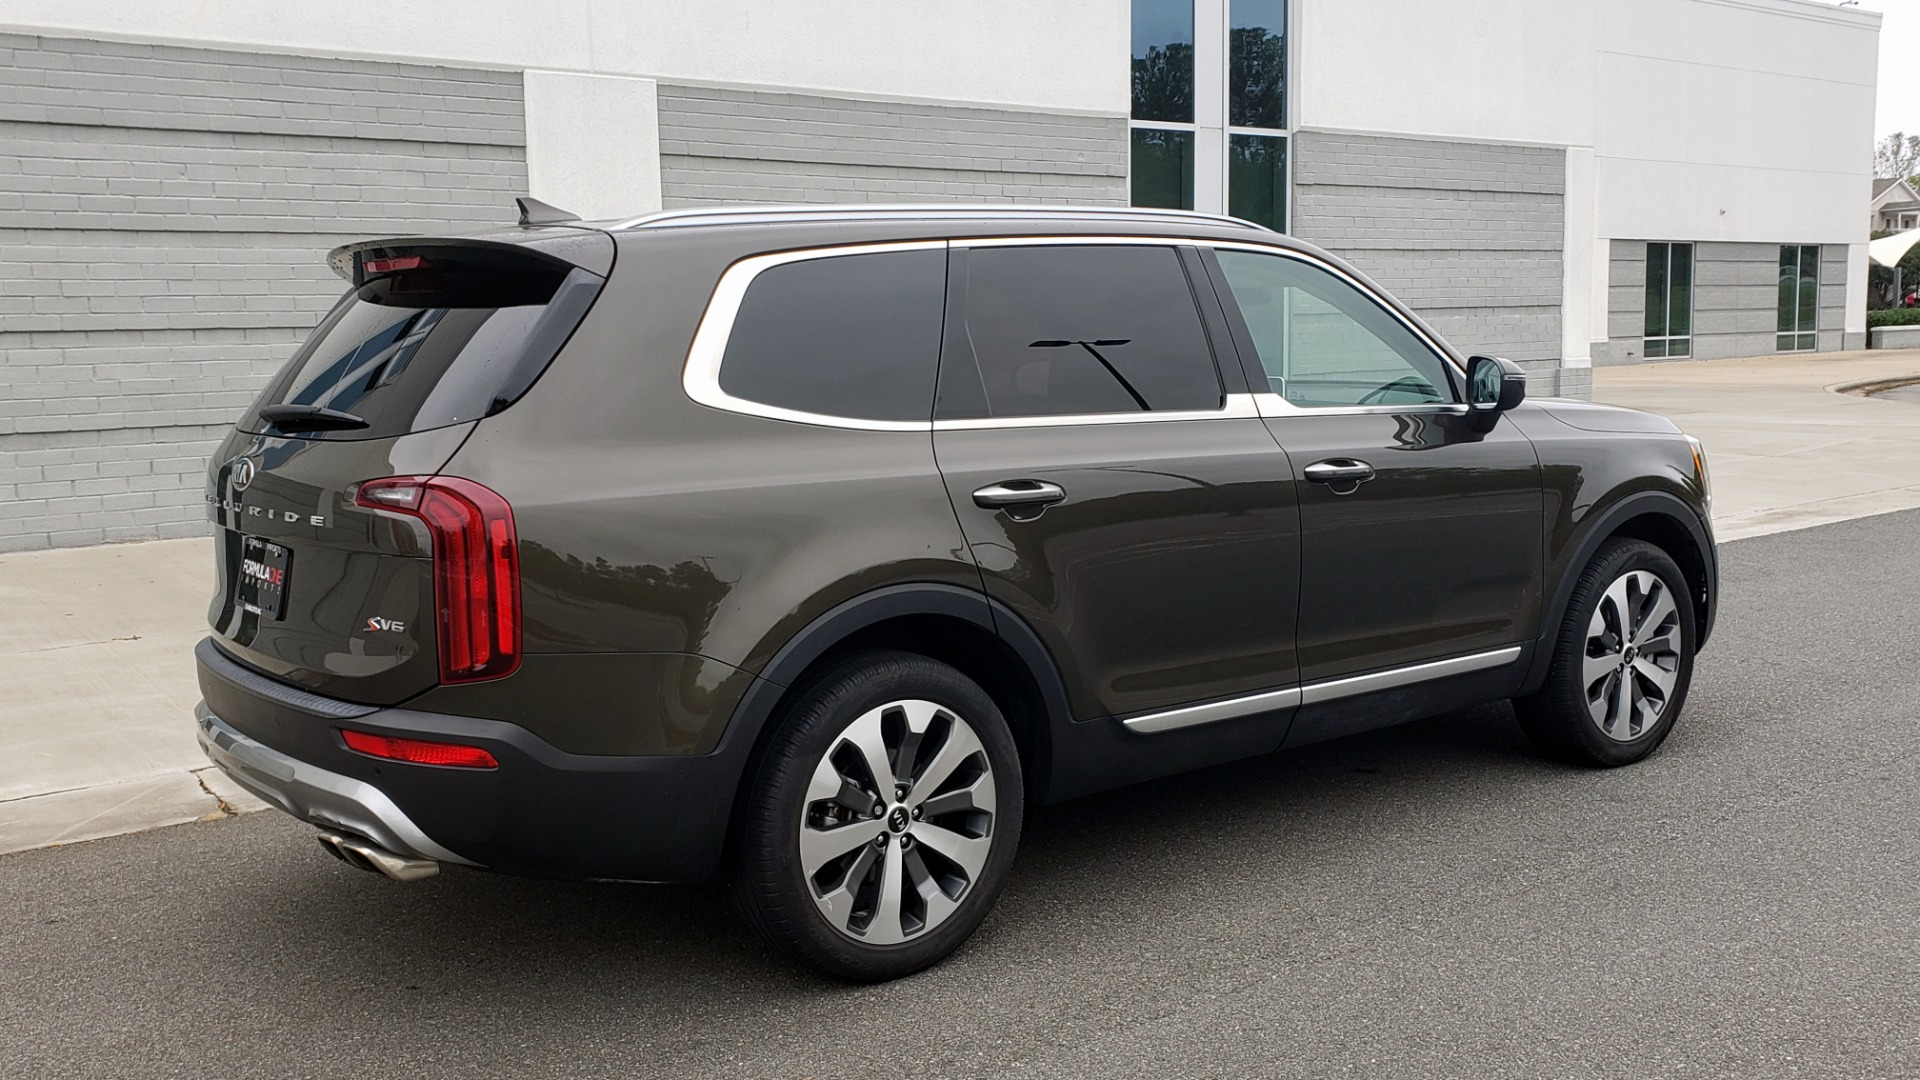 Used 2020 Kia TELLURIDE S 3.8L / FWD / 8-SPD AUTO / SUNROOF / REARVIEW / 20INCH WHEELS for sale $41,595 at Formula Imports in Charlotte NC 28227 7